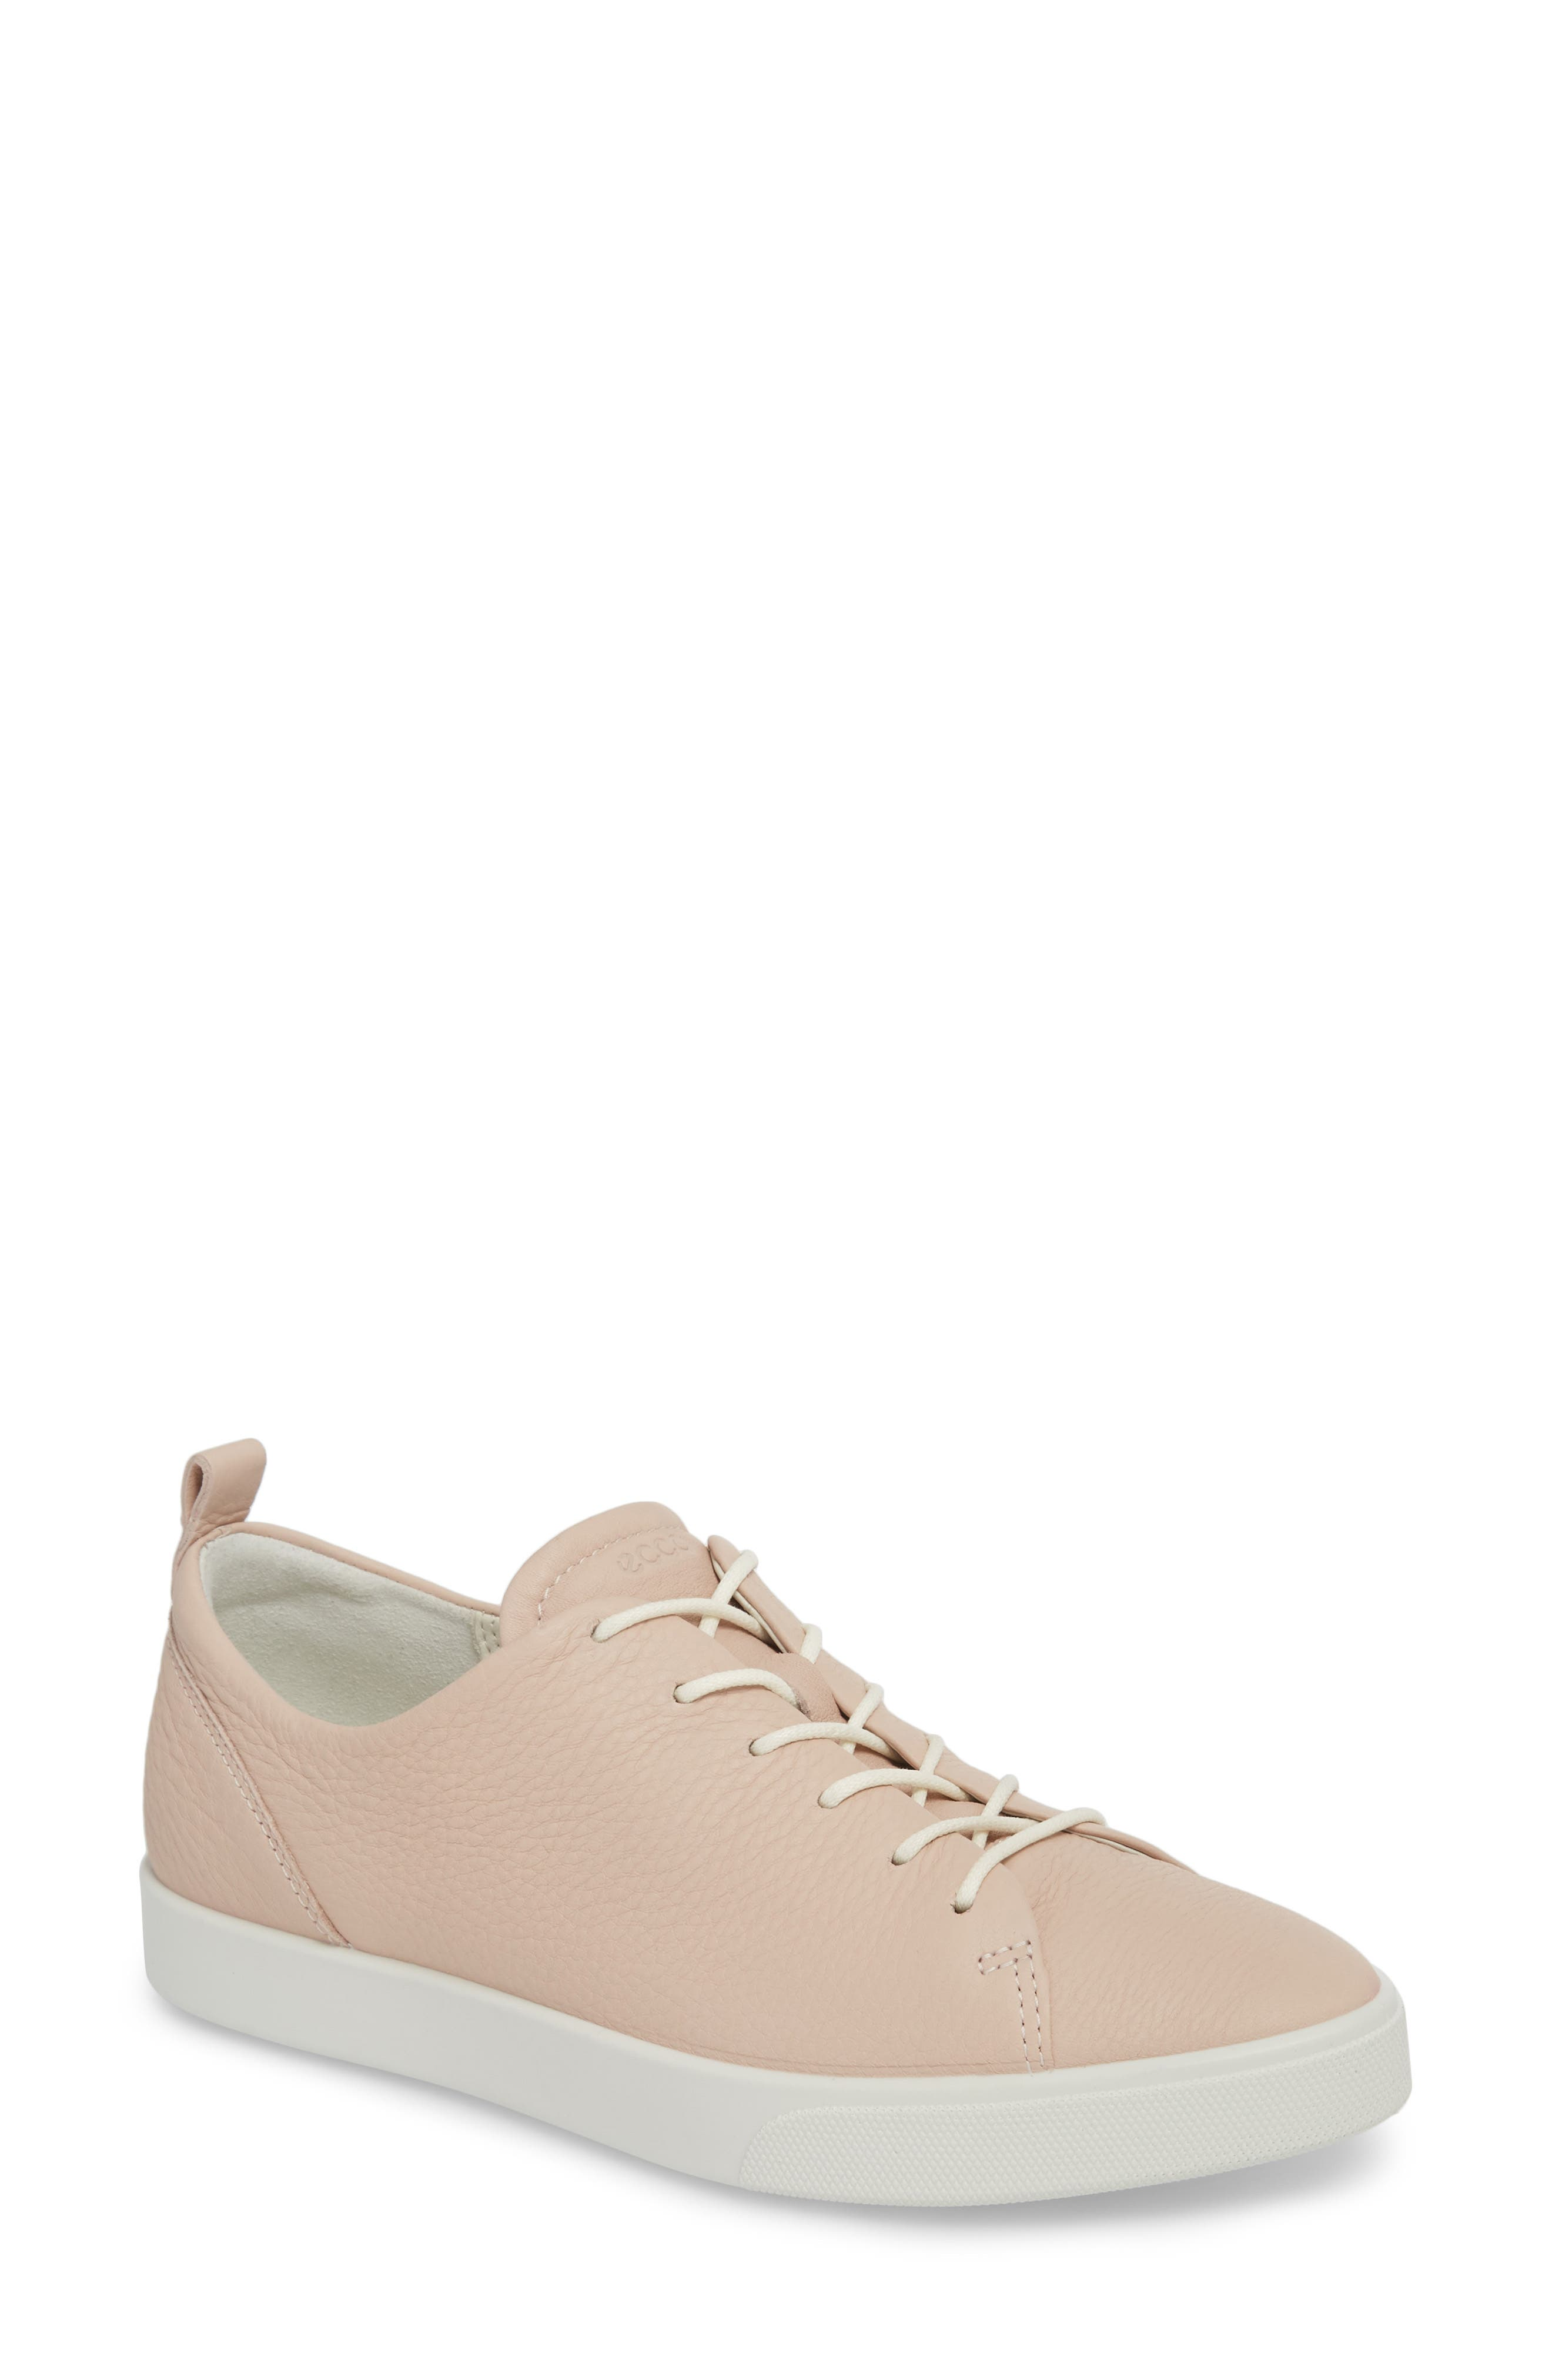 Gillian Sneaker,                         Main,                         color, Rose Dust Leather